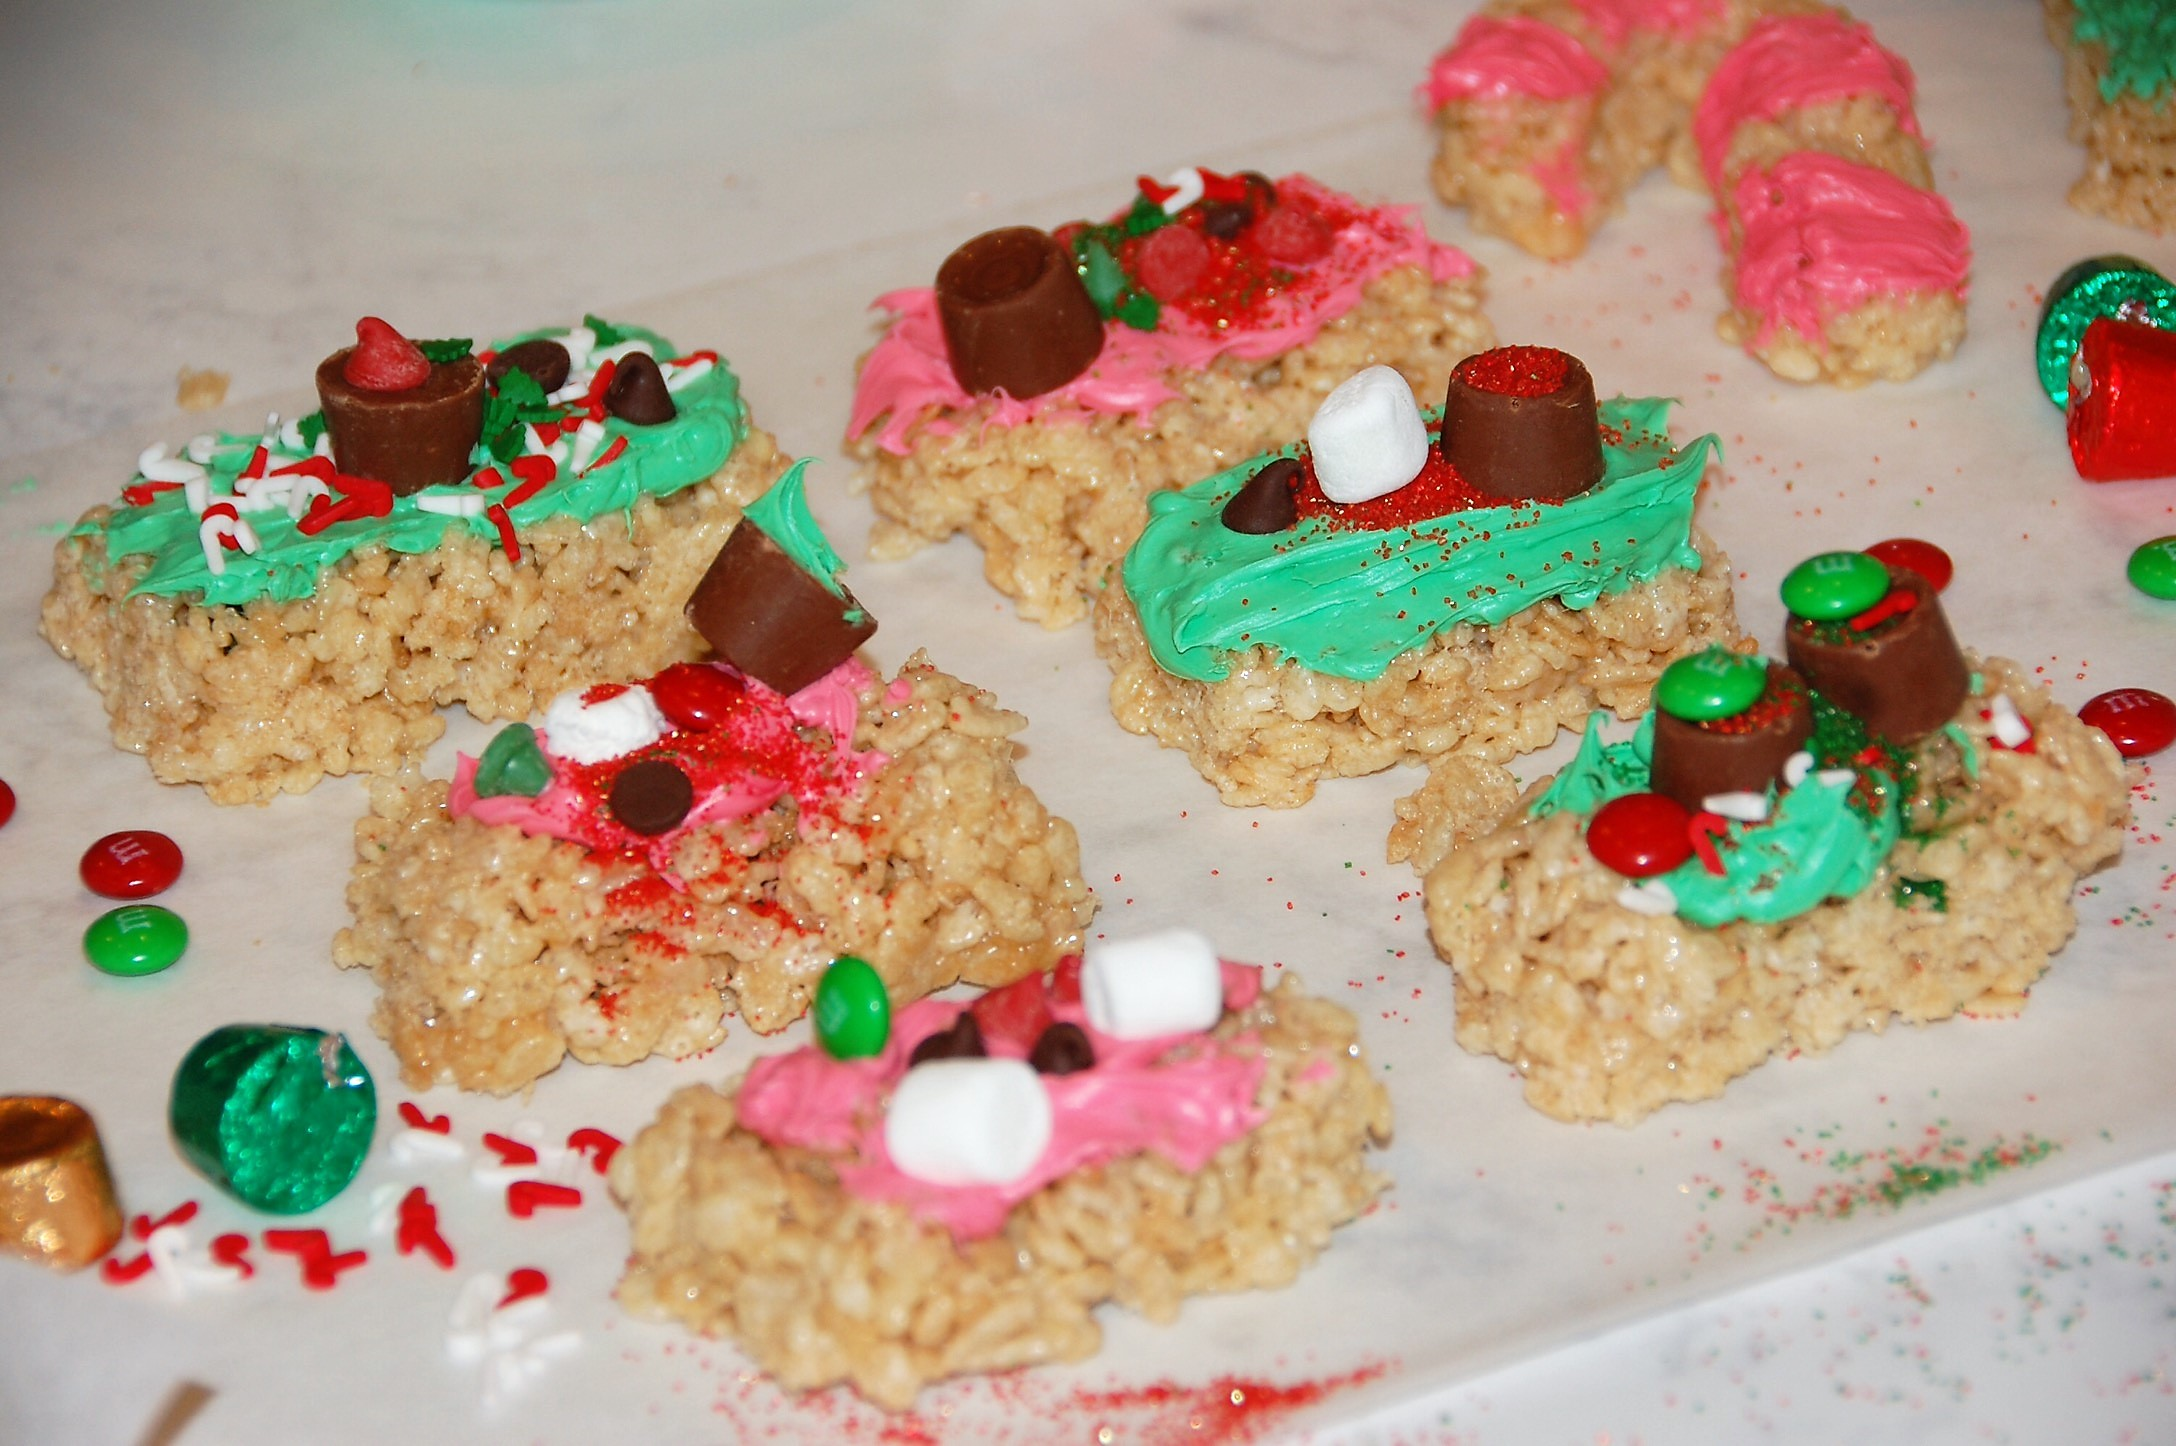 Decorated rice krispies treats for holiday gifts